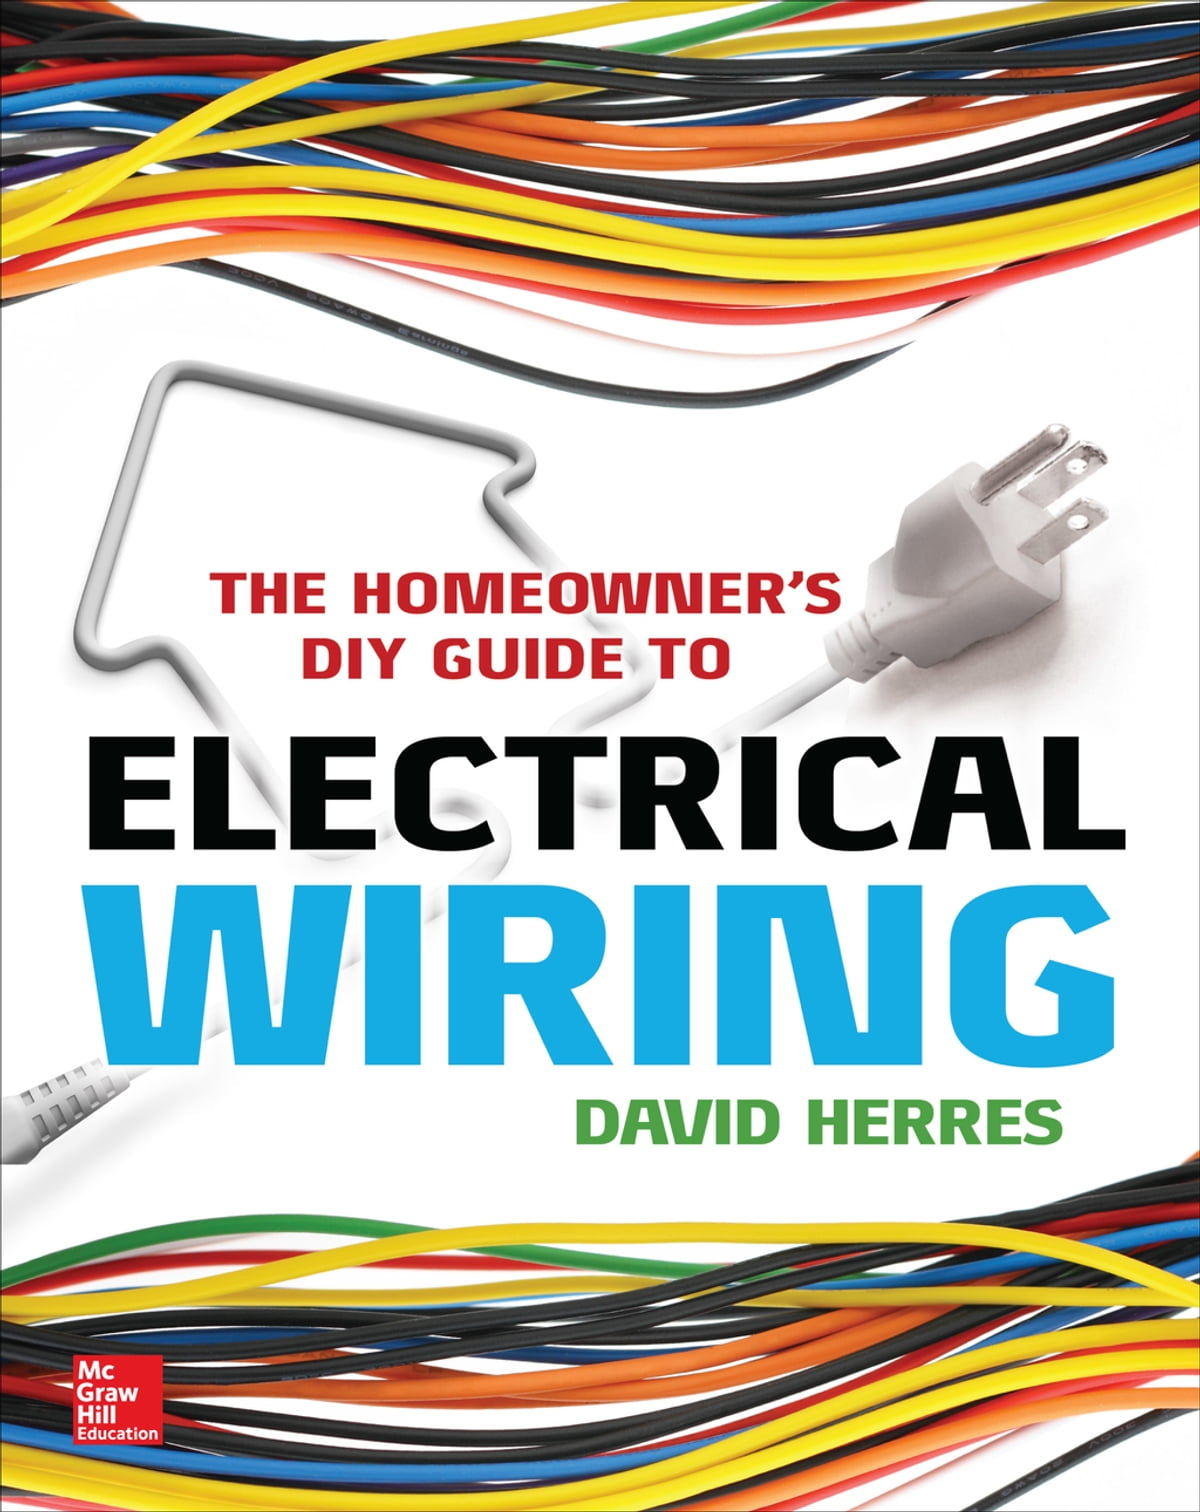 hight resolution of the homeowner s diy guide to electrical wiring ebook by david herres 9780071844734 rakuten kobo